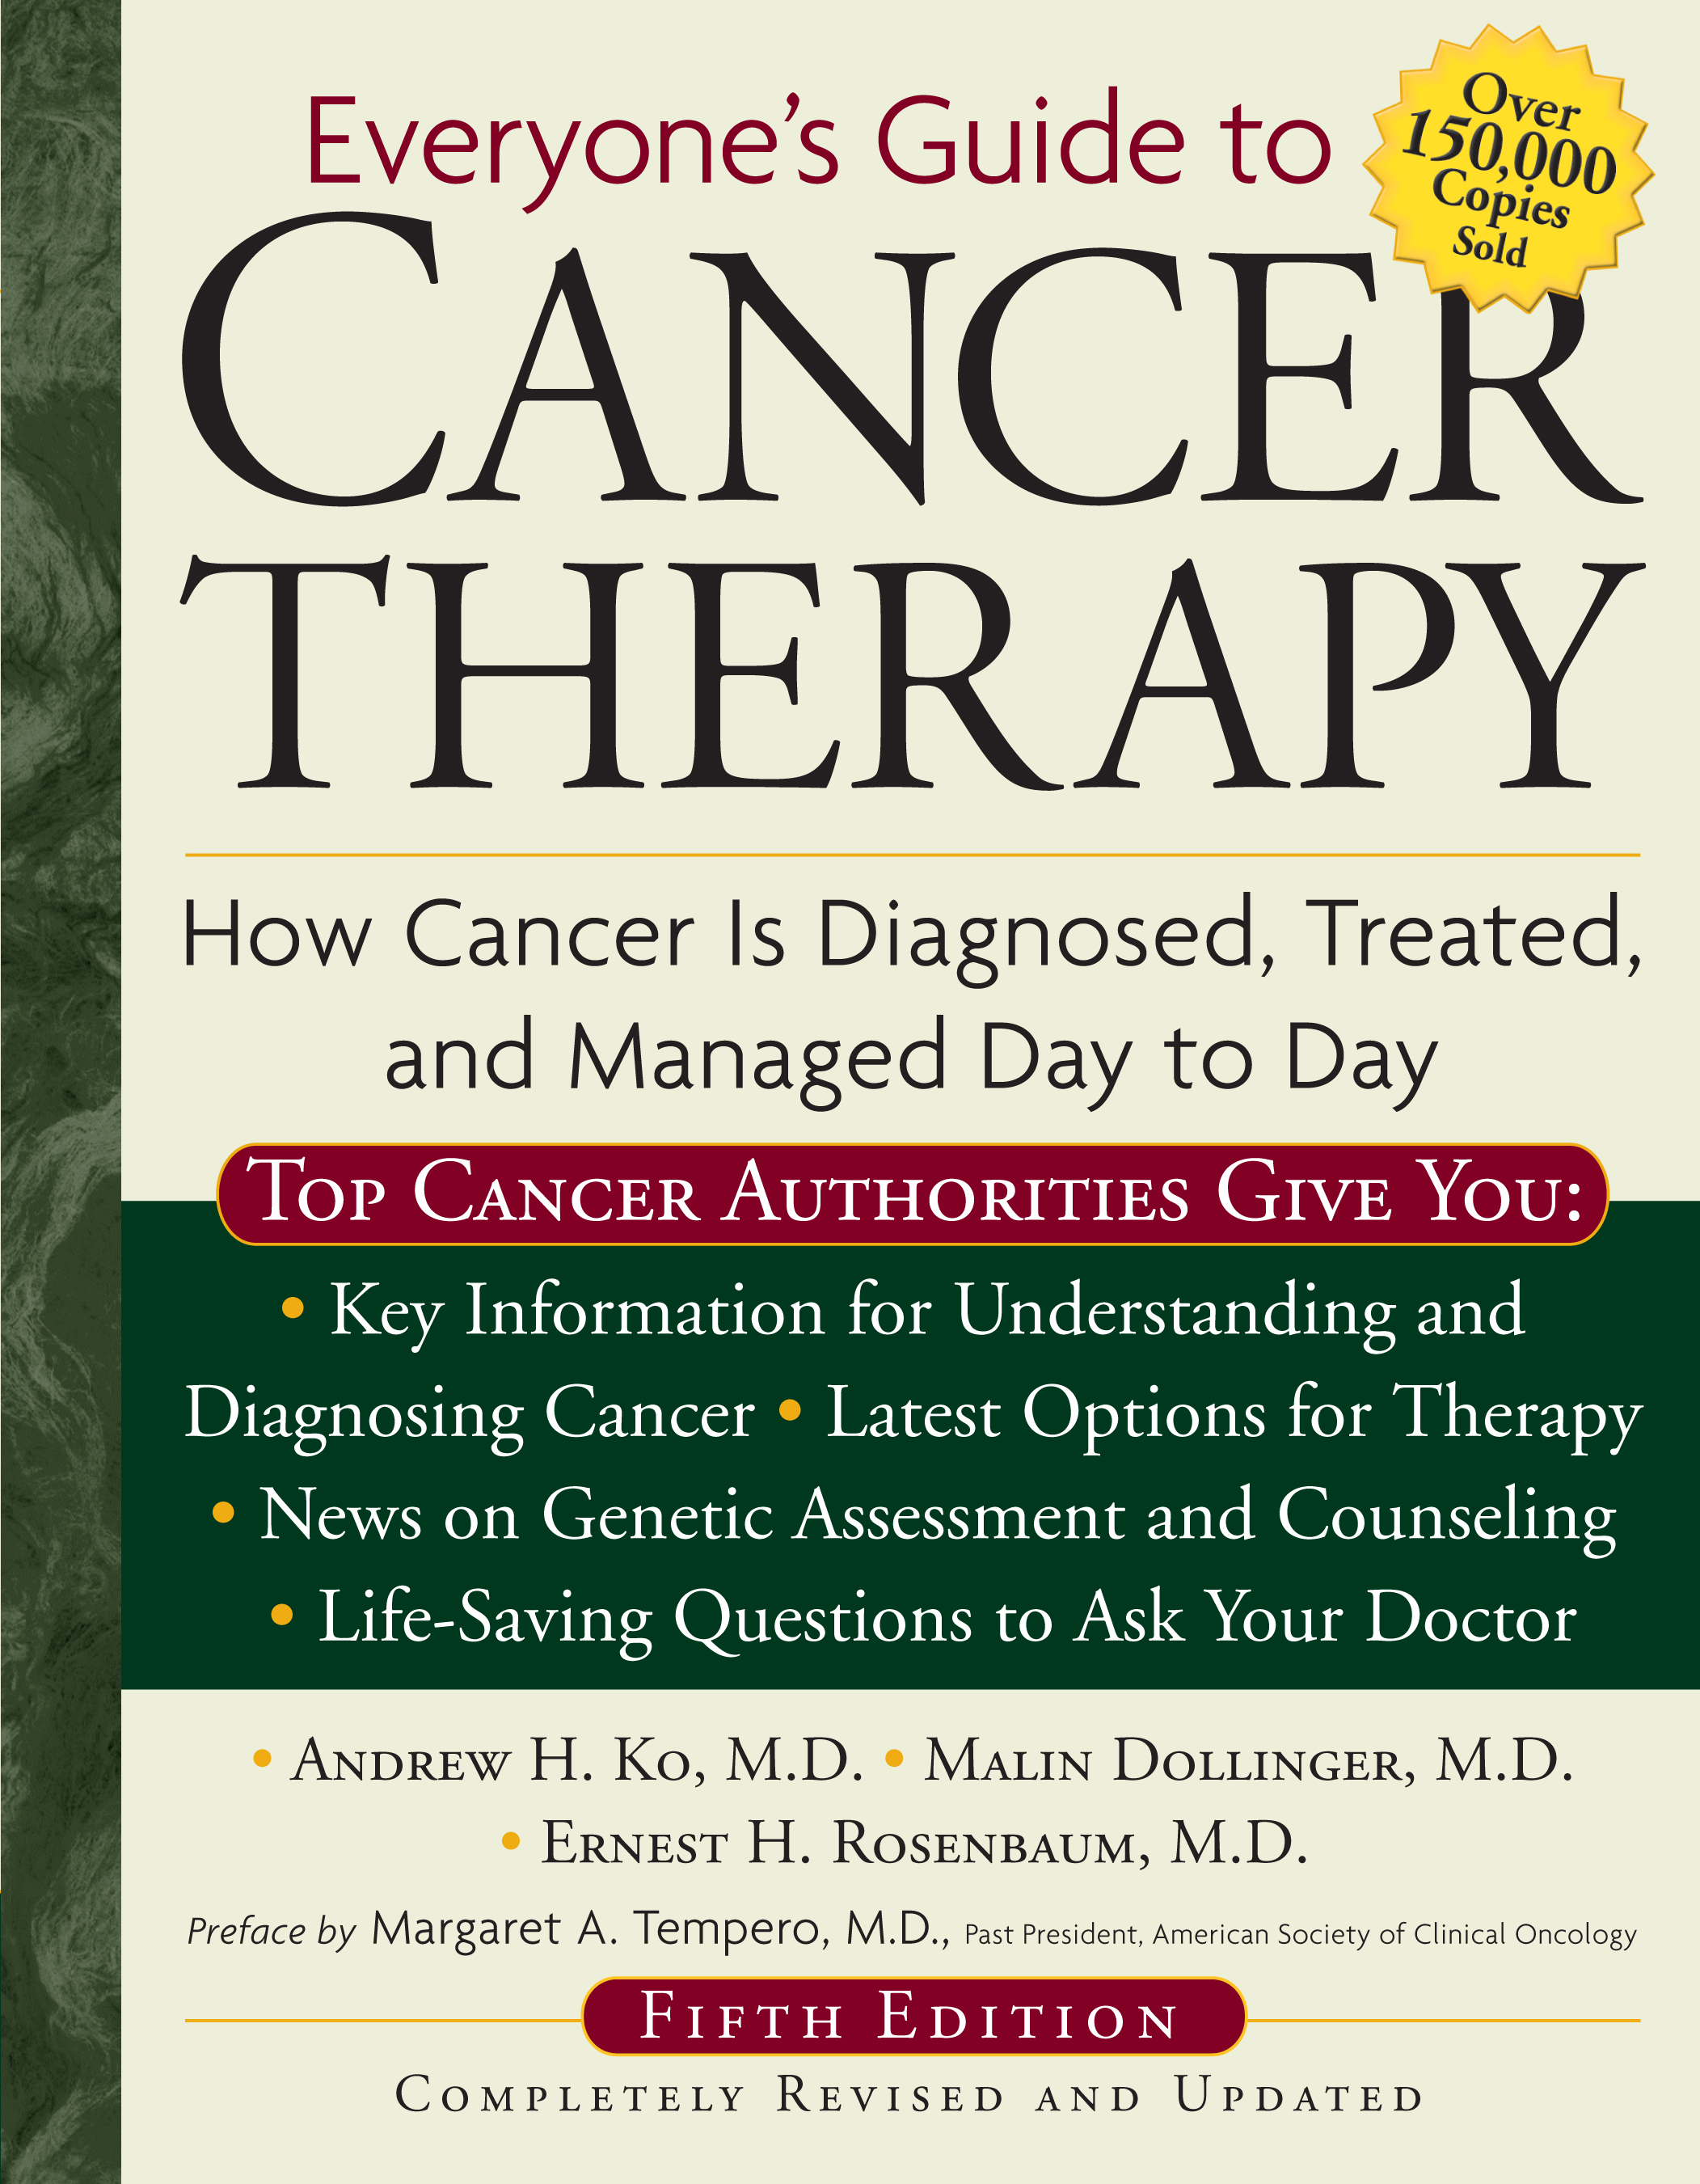 Everyone's Guide to Cancer Therapy: How Cancer Is Diagnosed, Treated, and Managed Day to Day By: Dr. Andrew Ko,Ernest Rosenbaum,Malin Dollinger